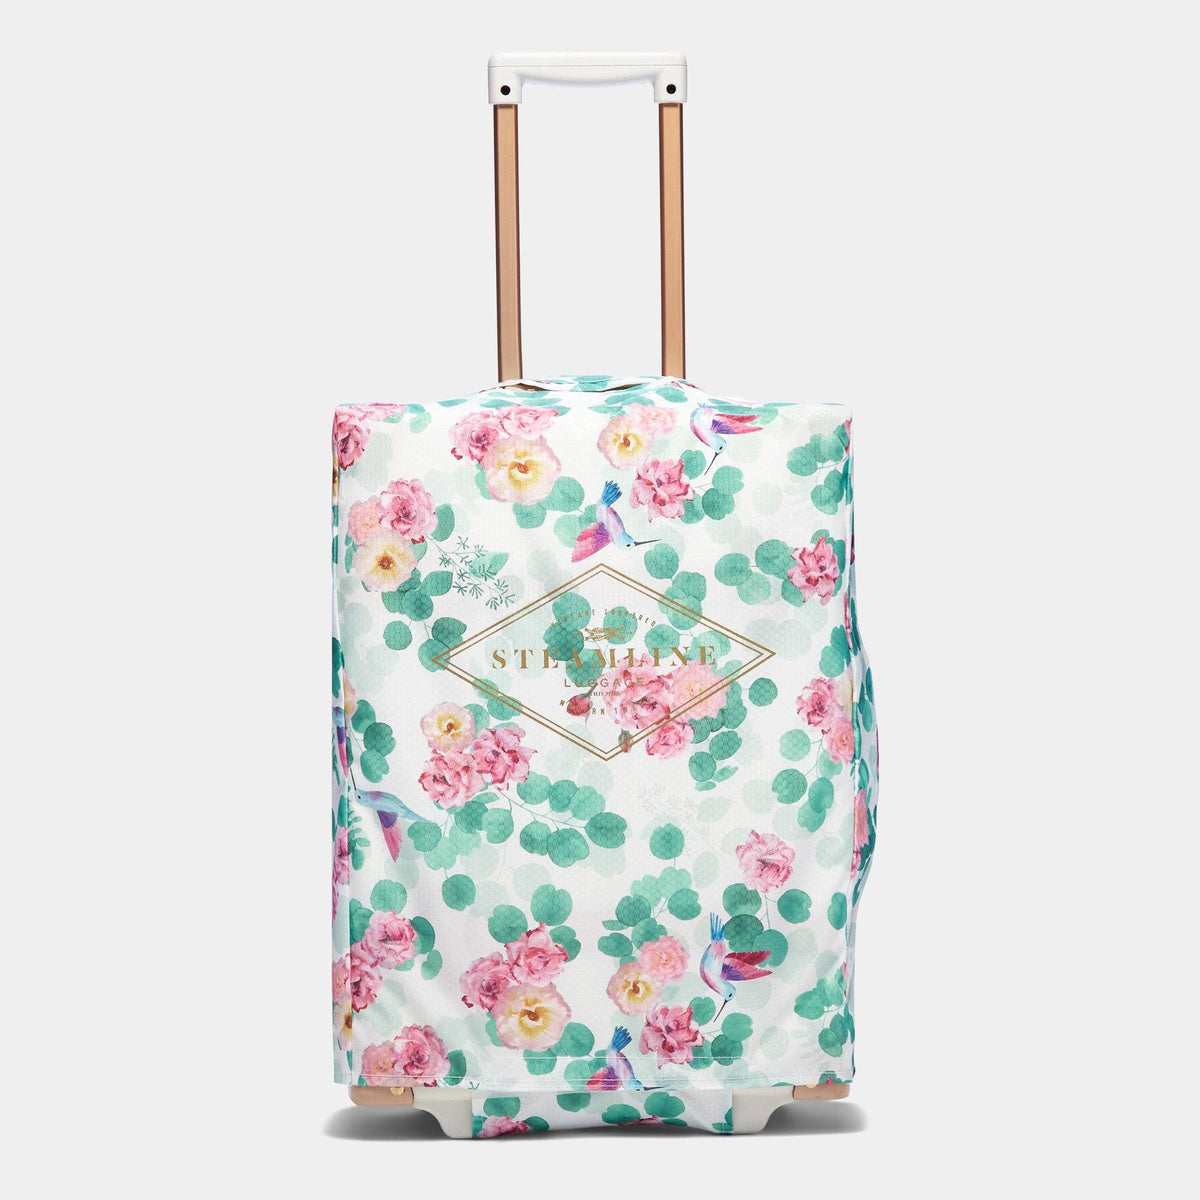 The Floral Protective Cover - Stowaway Size